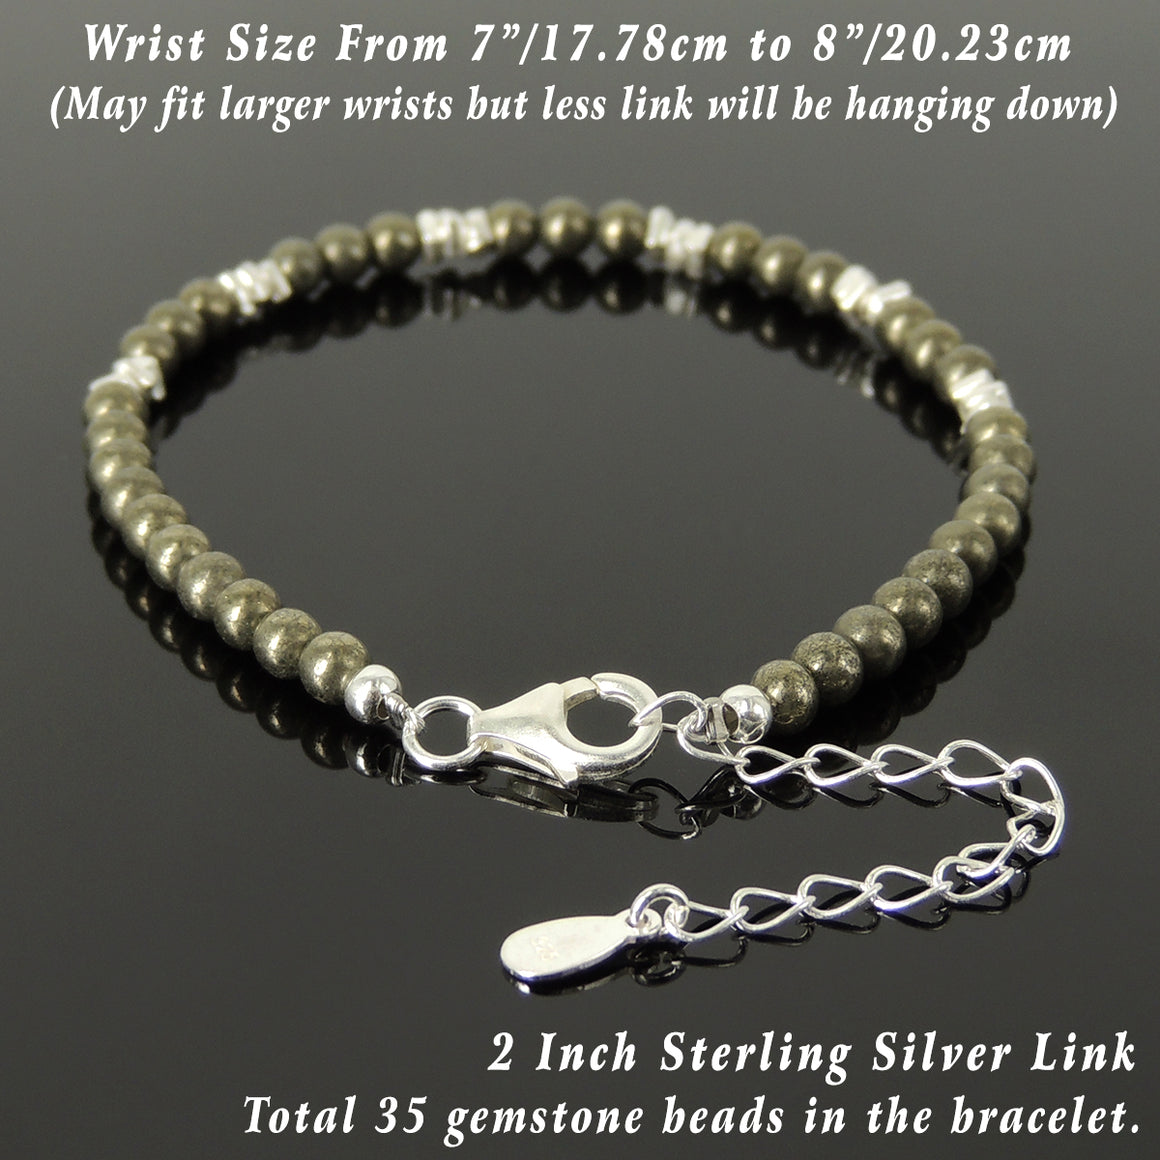 4mm Gold Pyrite Healing Stone Bracelet with S925 Sterling Silver Nugget Beads, Chain, & Clasp - Handmade by Gem & Silver BR1281